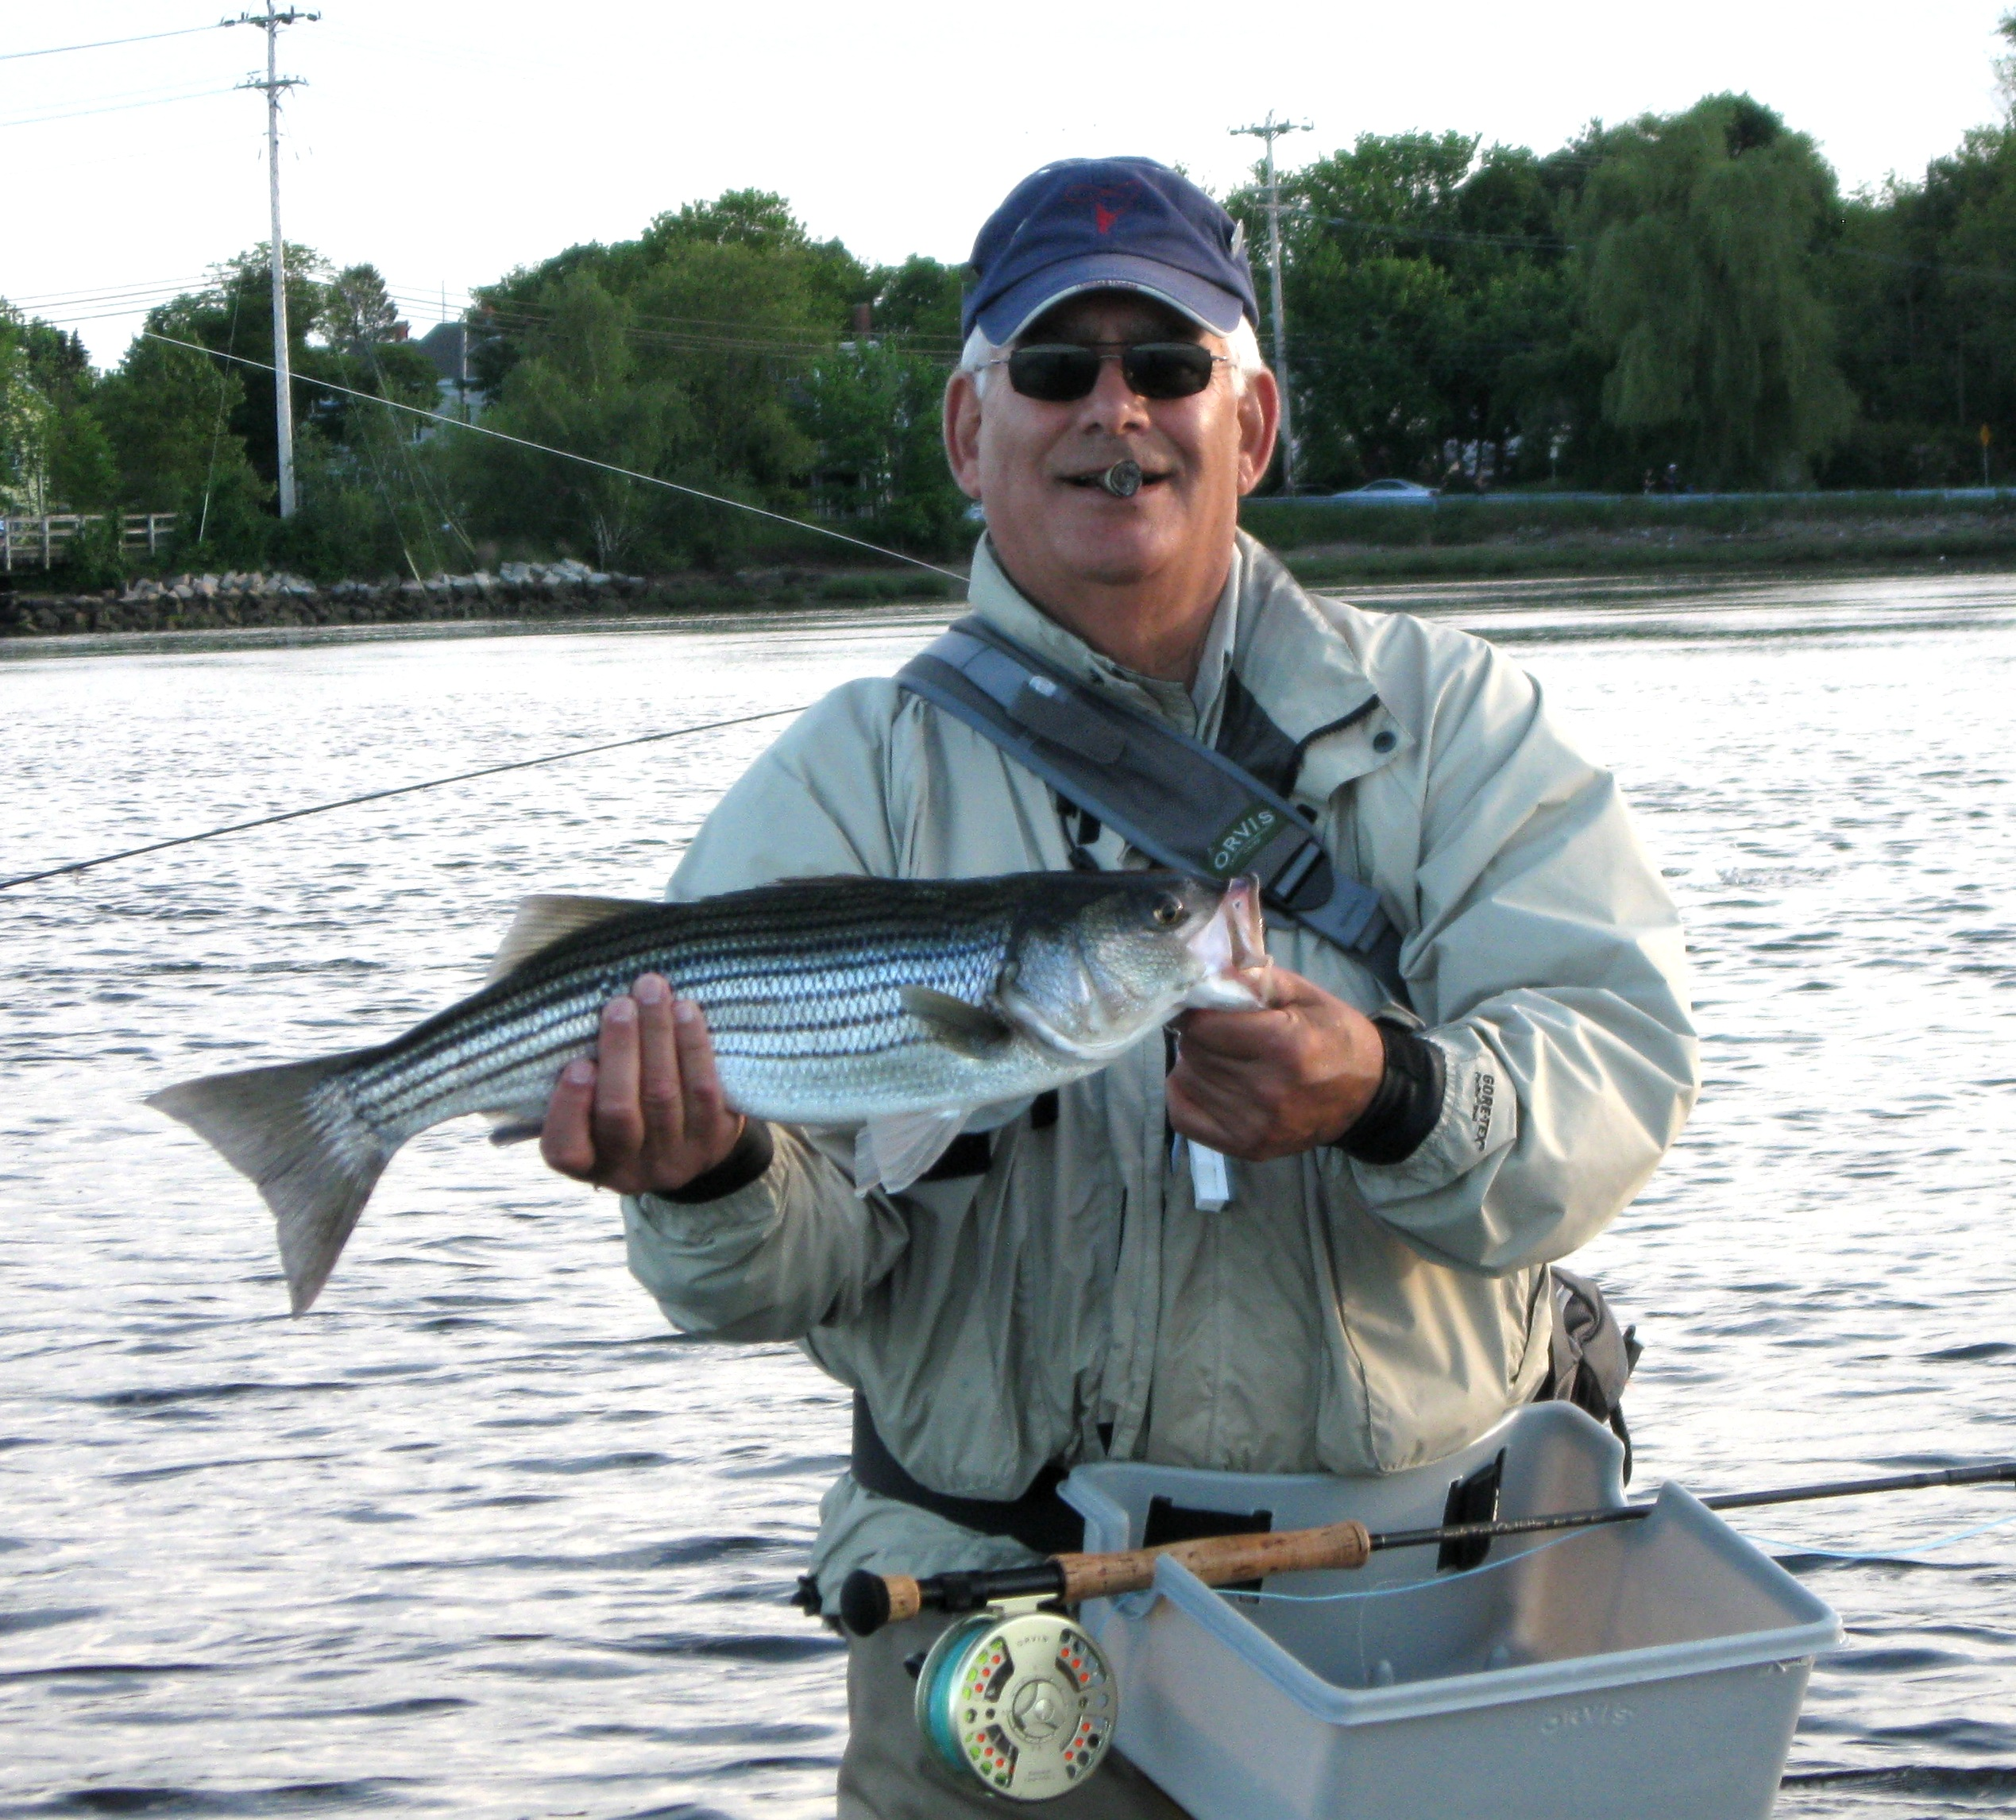 Striped bass hickory shad are taking flies in ri for Striper fishing ri